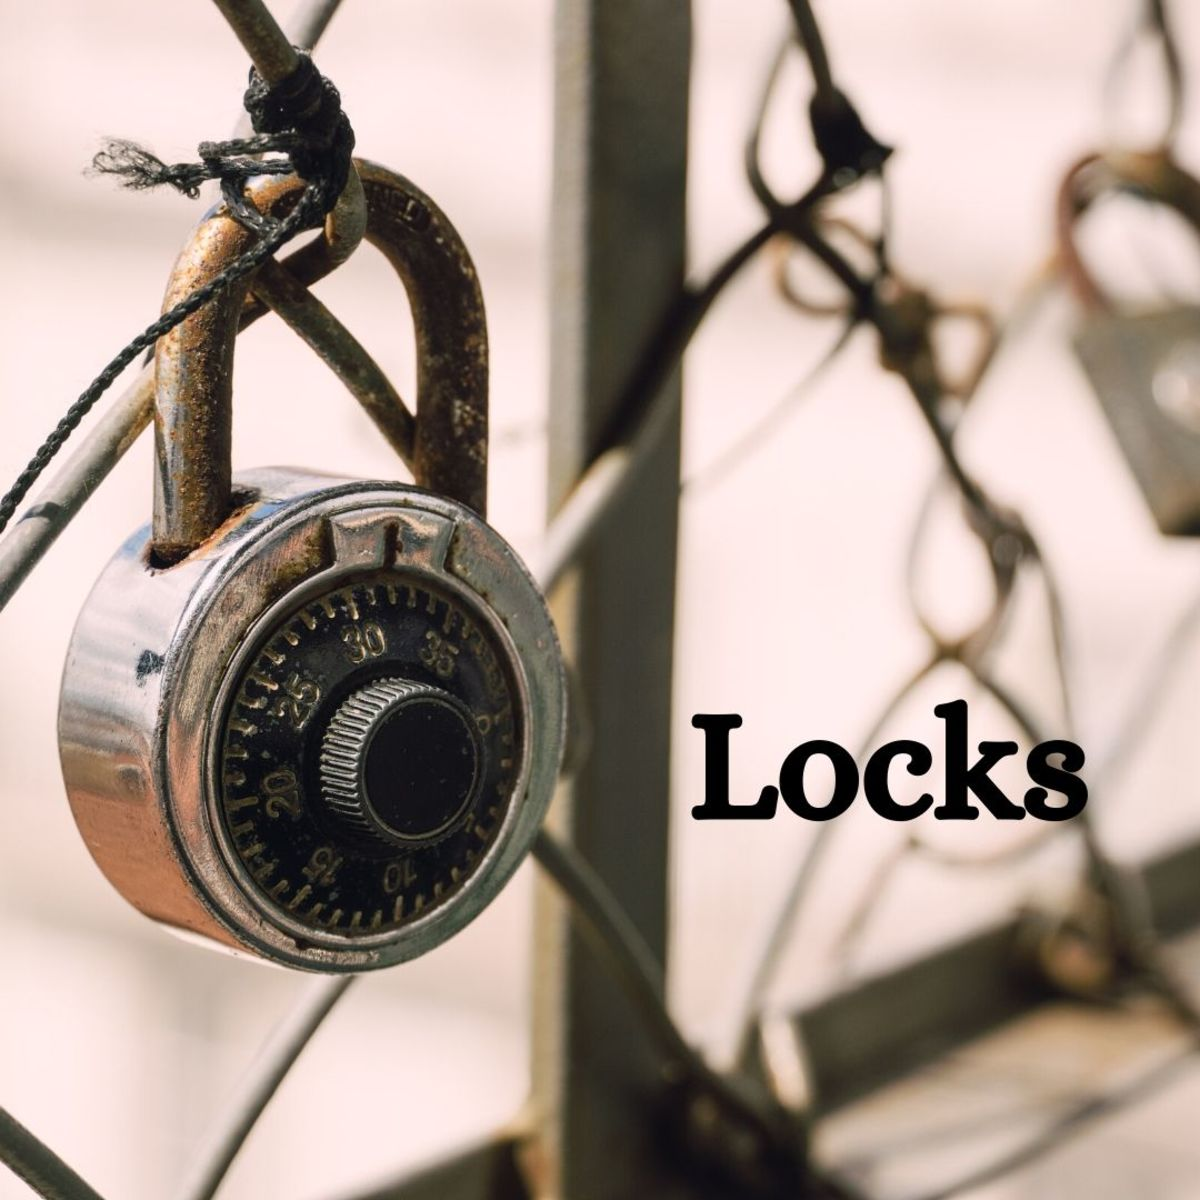 There are all kinds of locks. You can choose to collect them all, or just focus on one type (like padlocks).